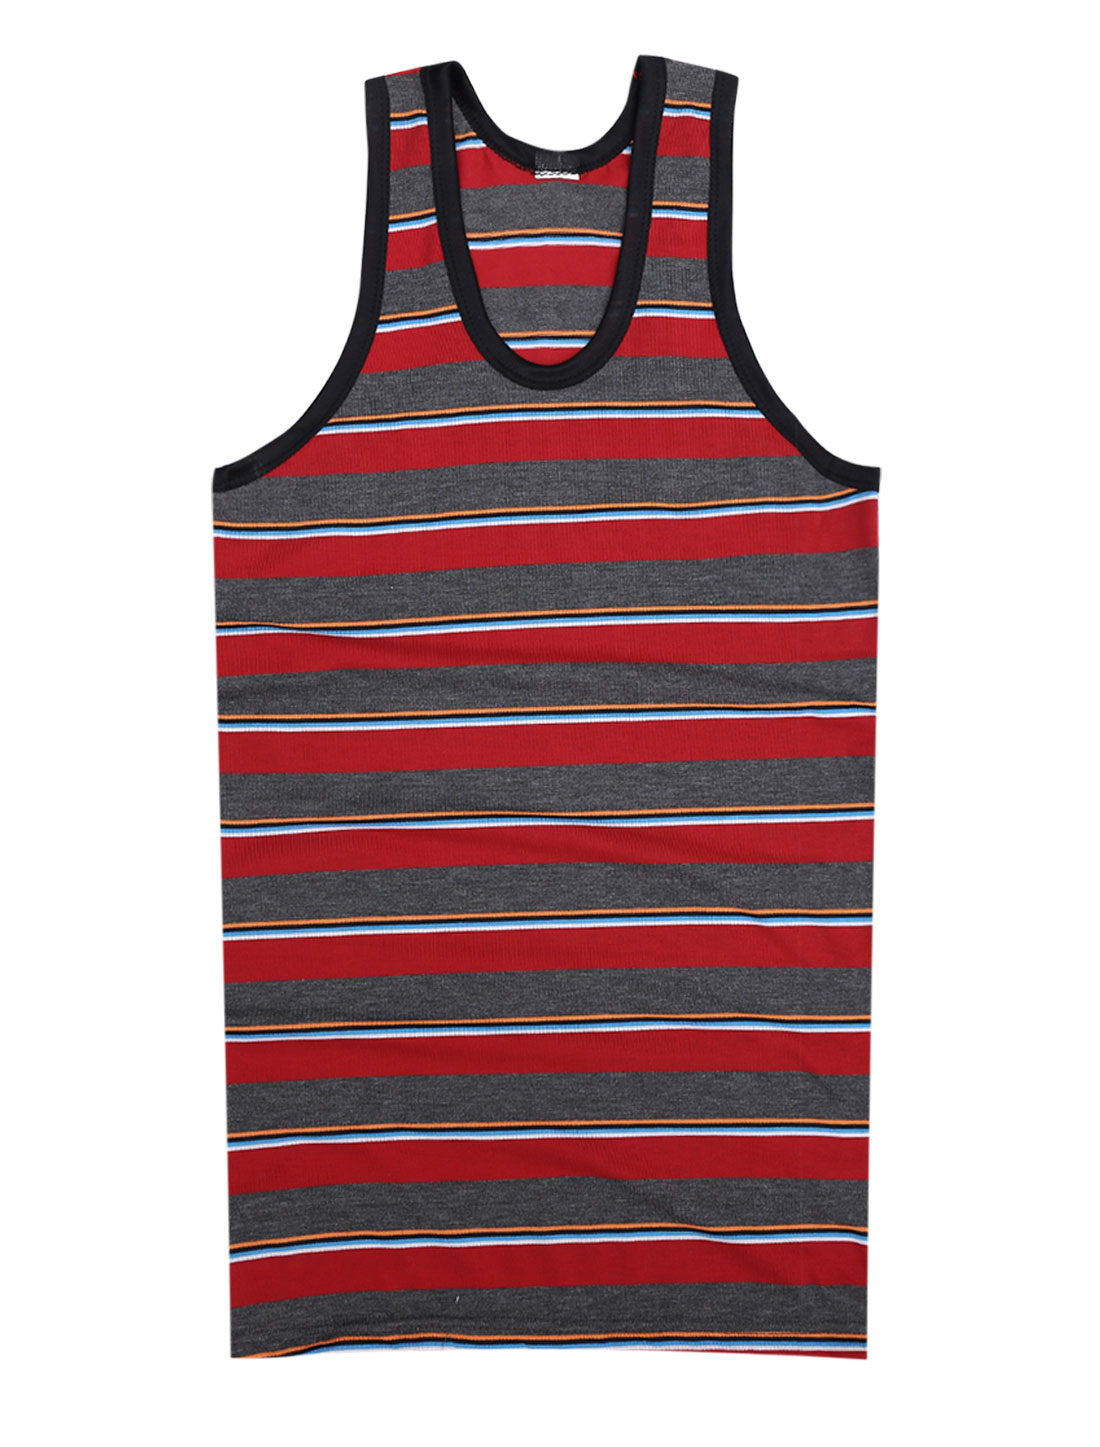 Men Stripes Pattern Piped Detail Slim Fit Tank Top Red Dark Gray S